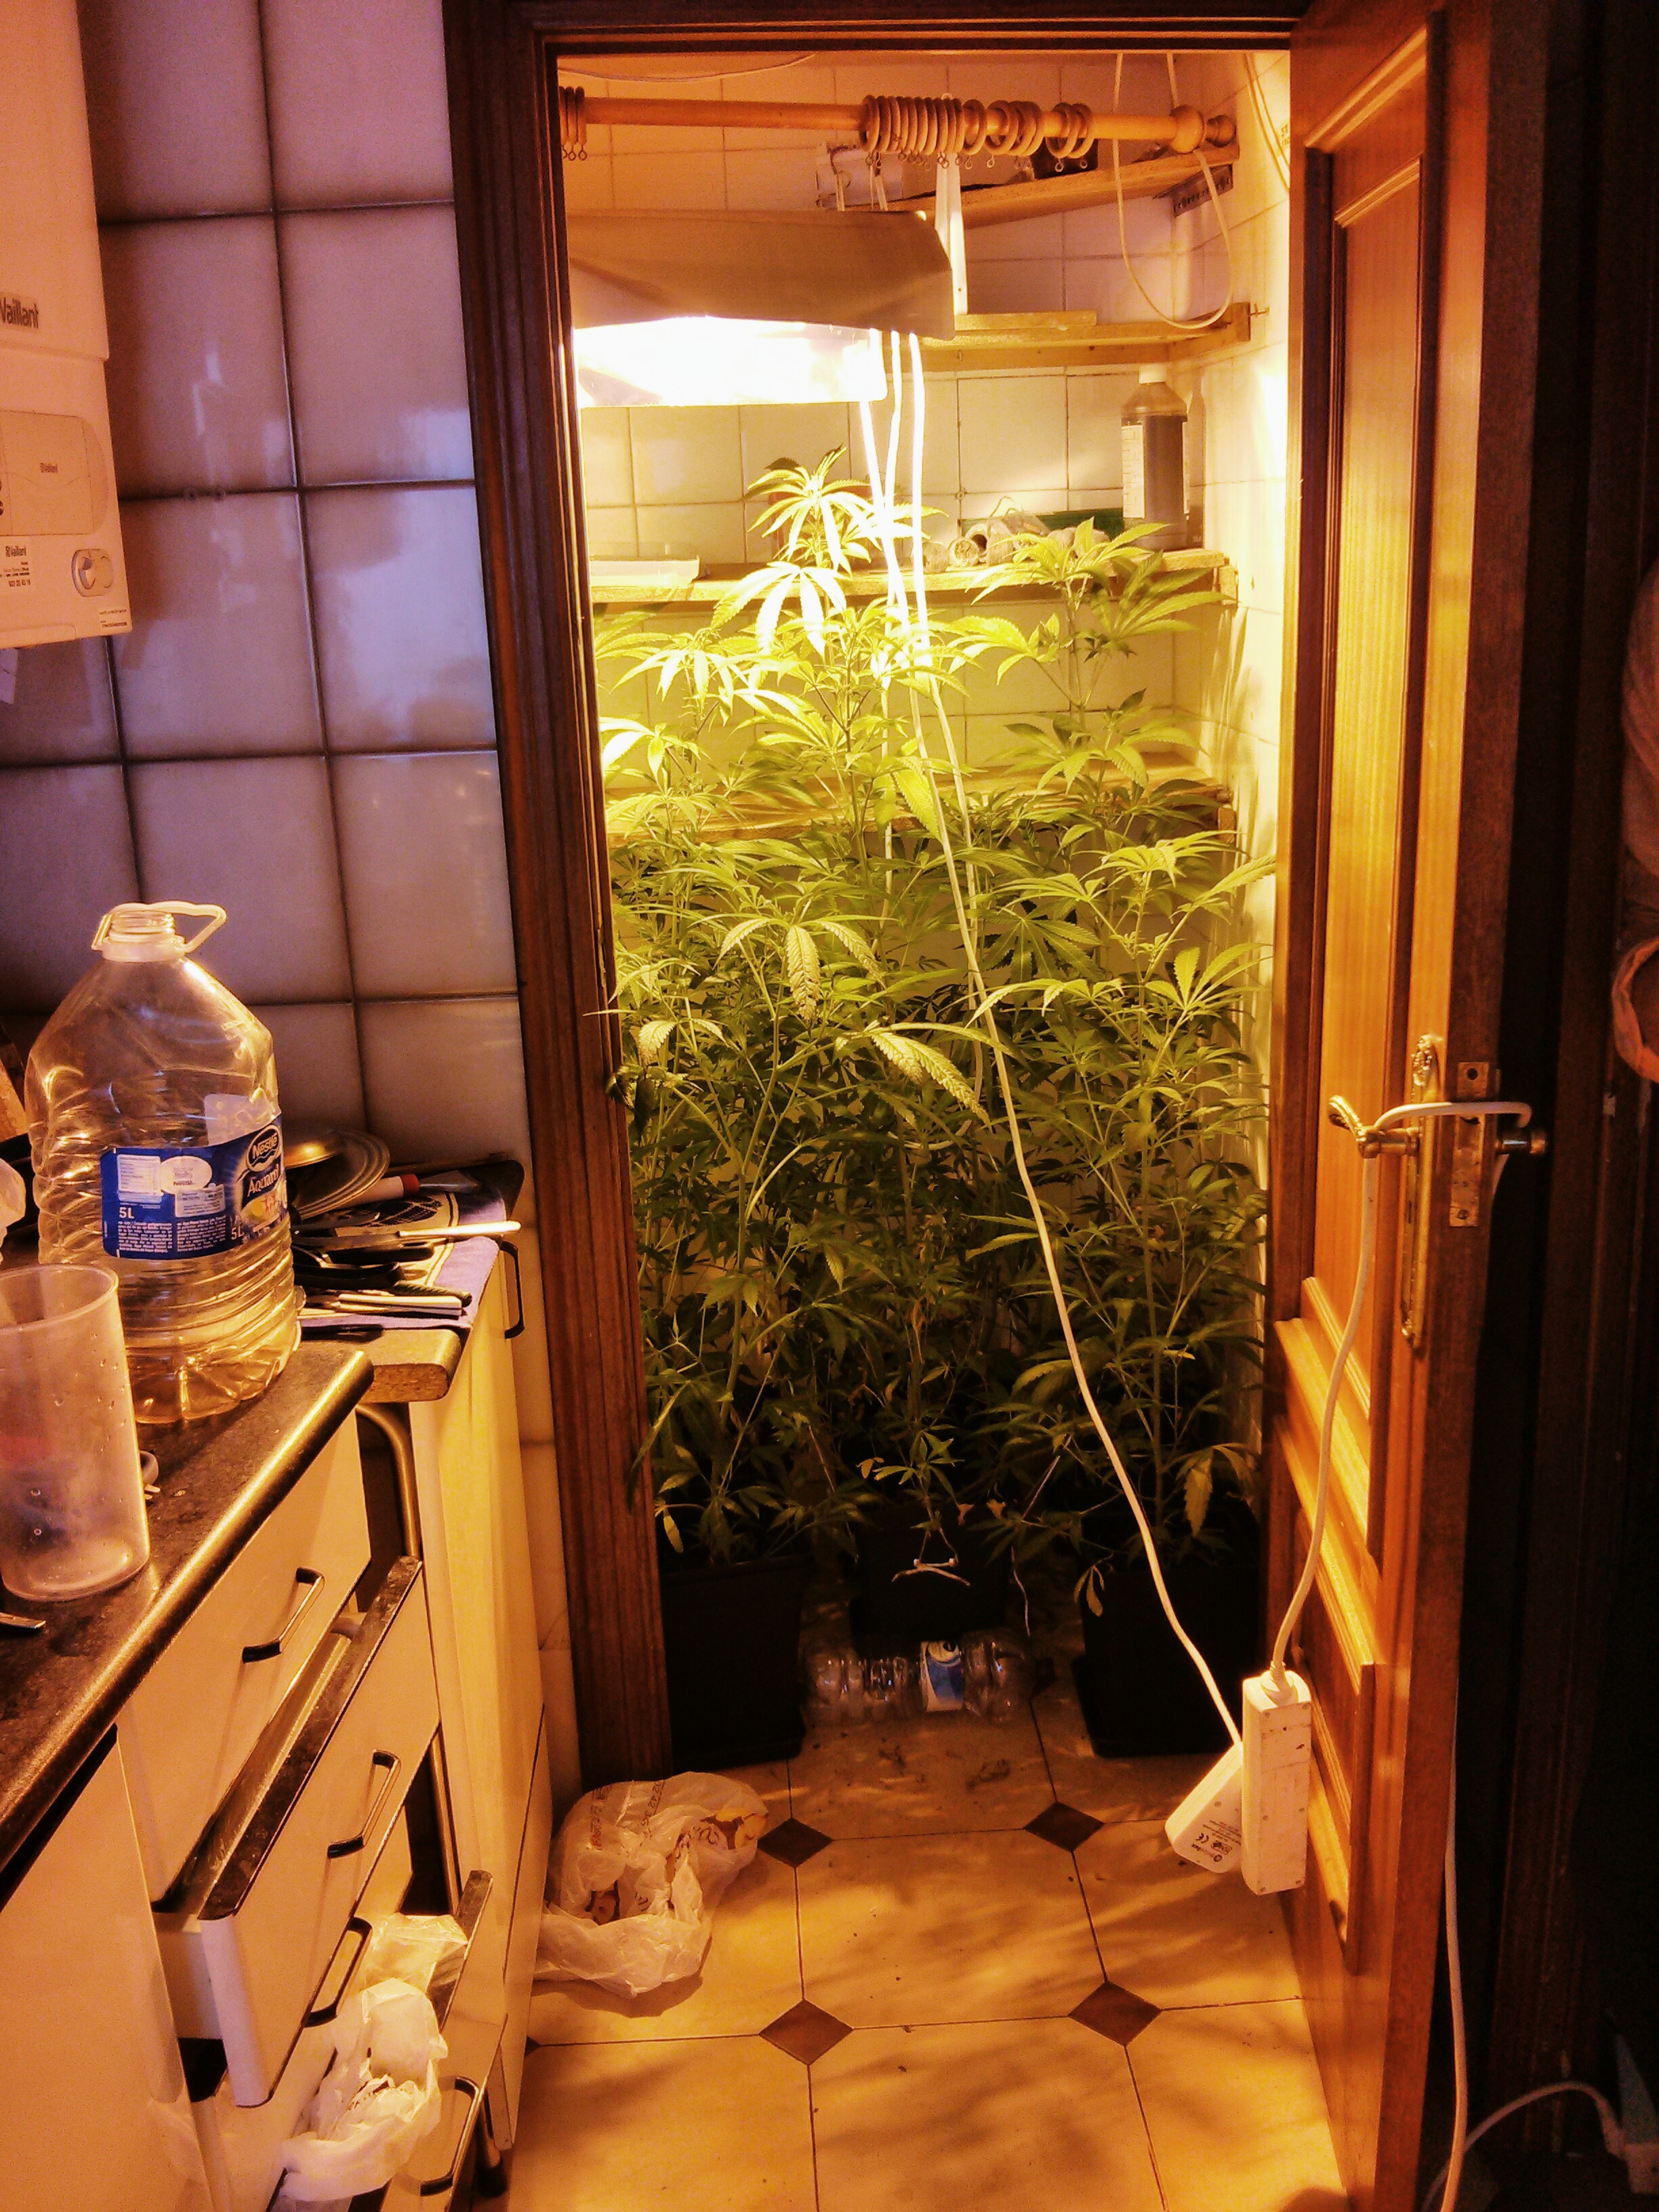 Marijuana grow house cleanup